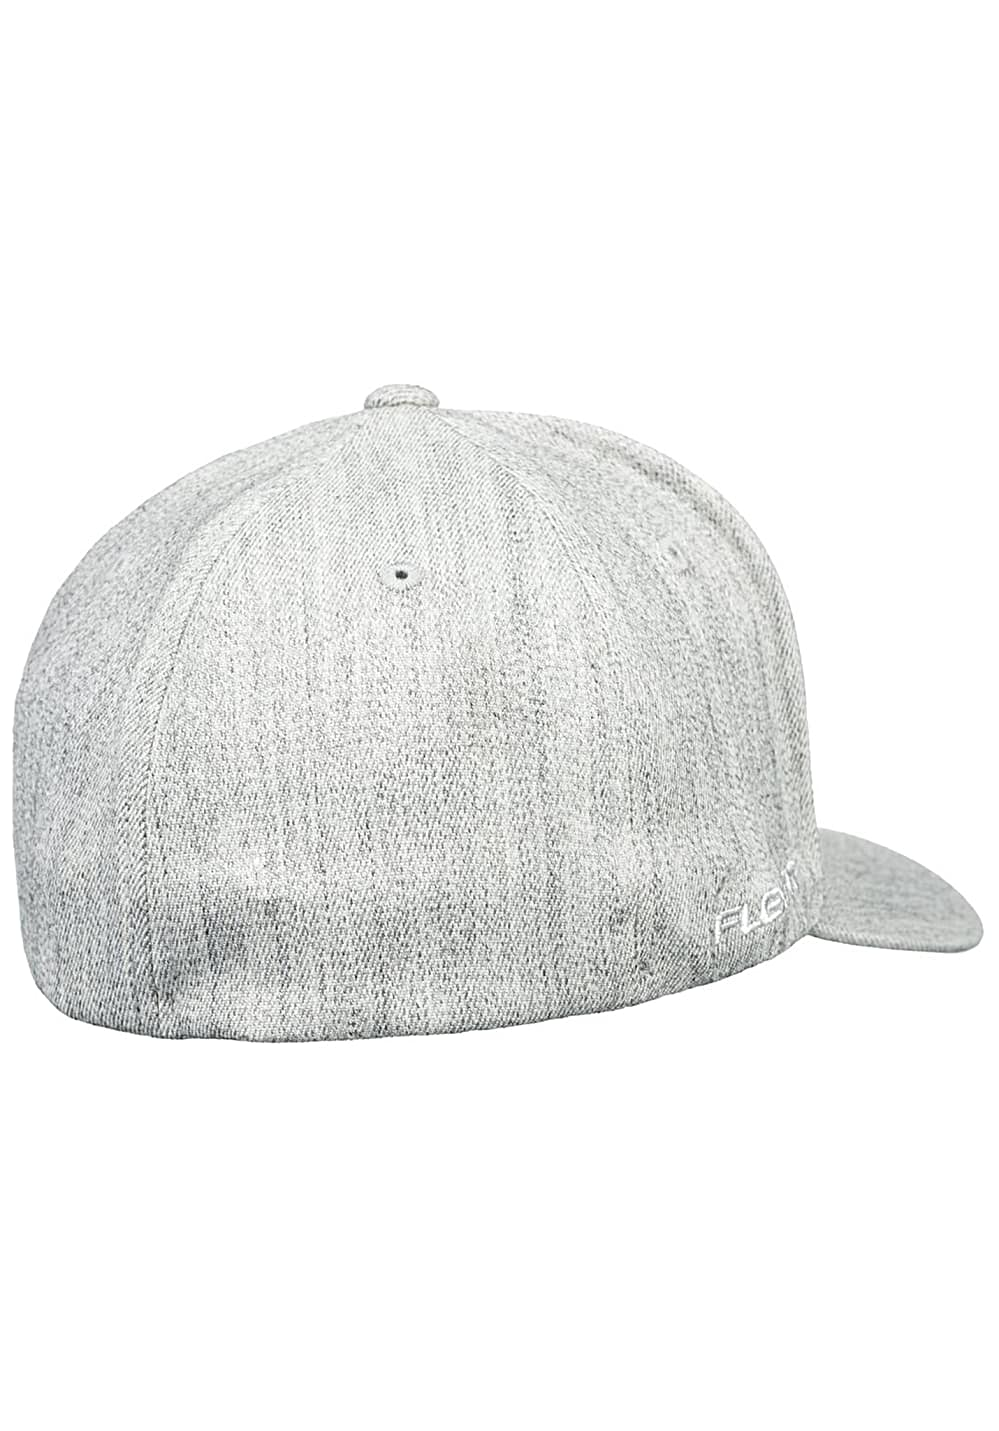 premium selection 9ff41 652cb Next. -10%. This product is currently out of stock. Quiksilver. Mountain  And Wave - Flexfit Cap for Men